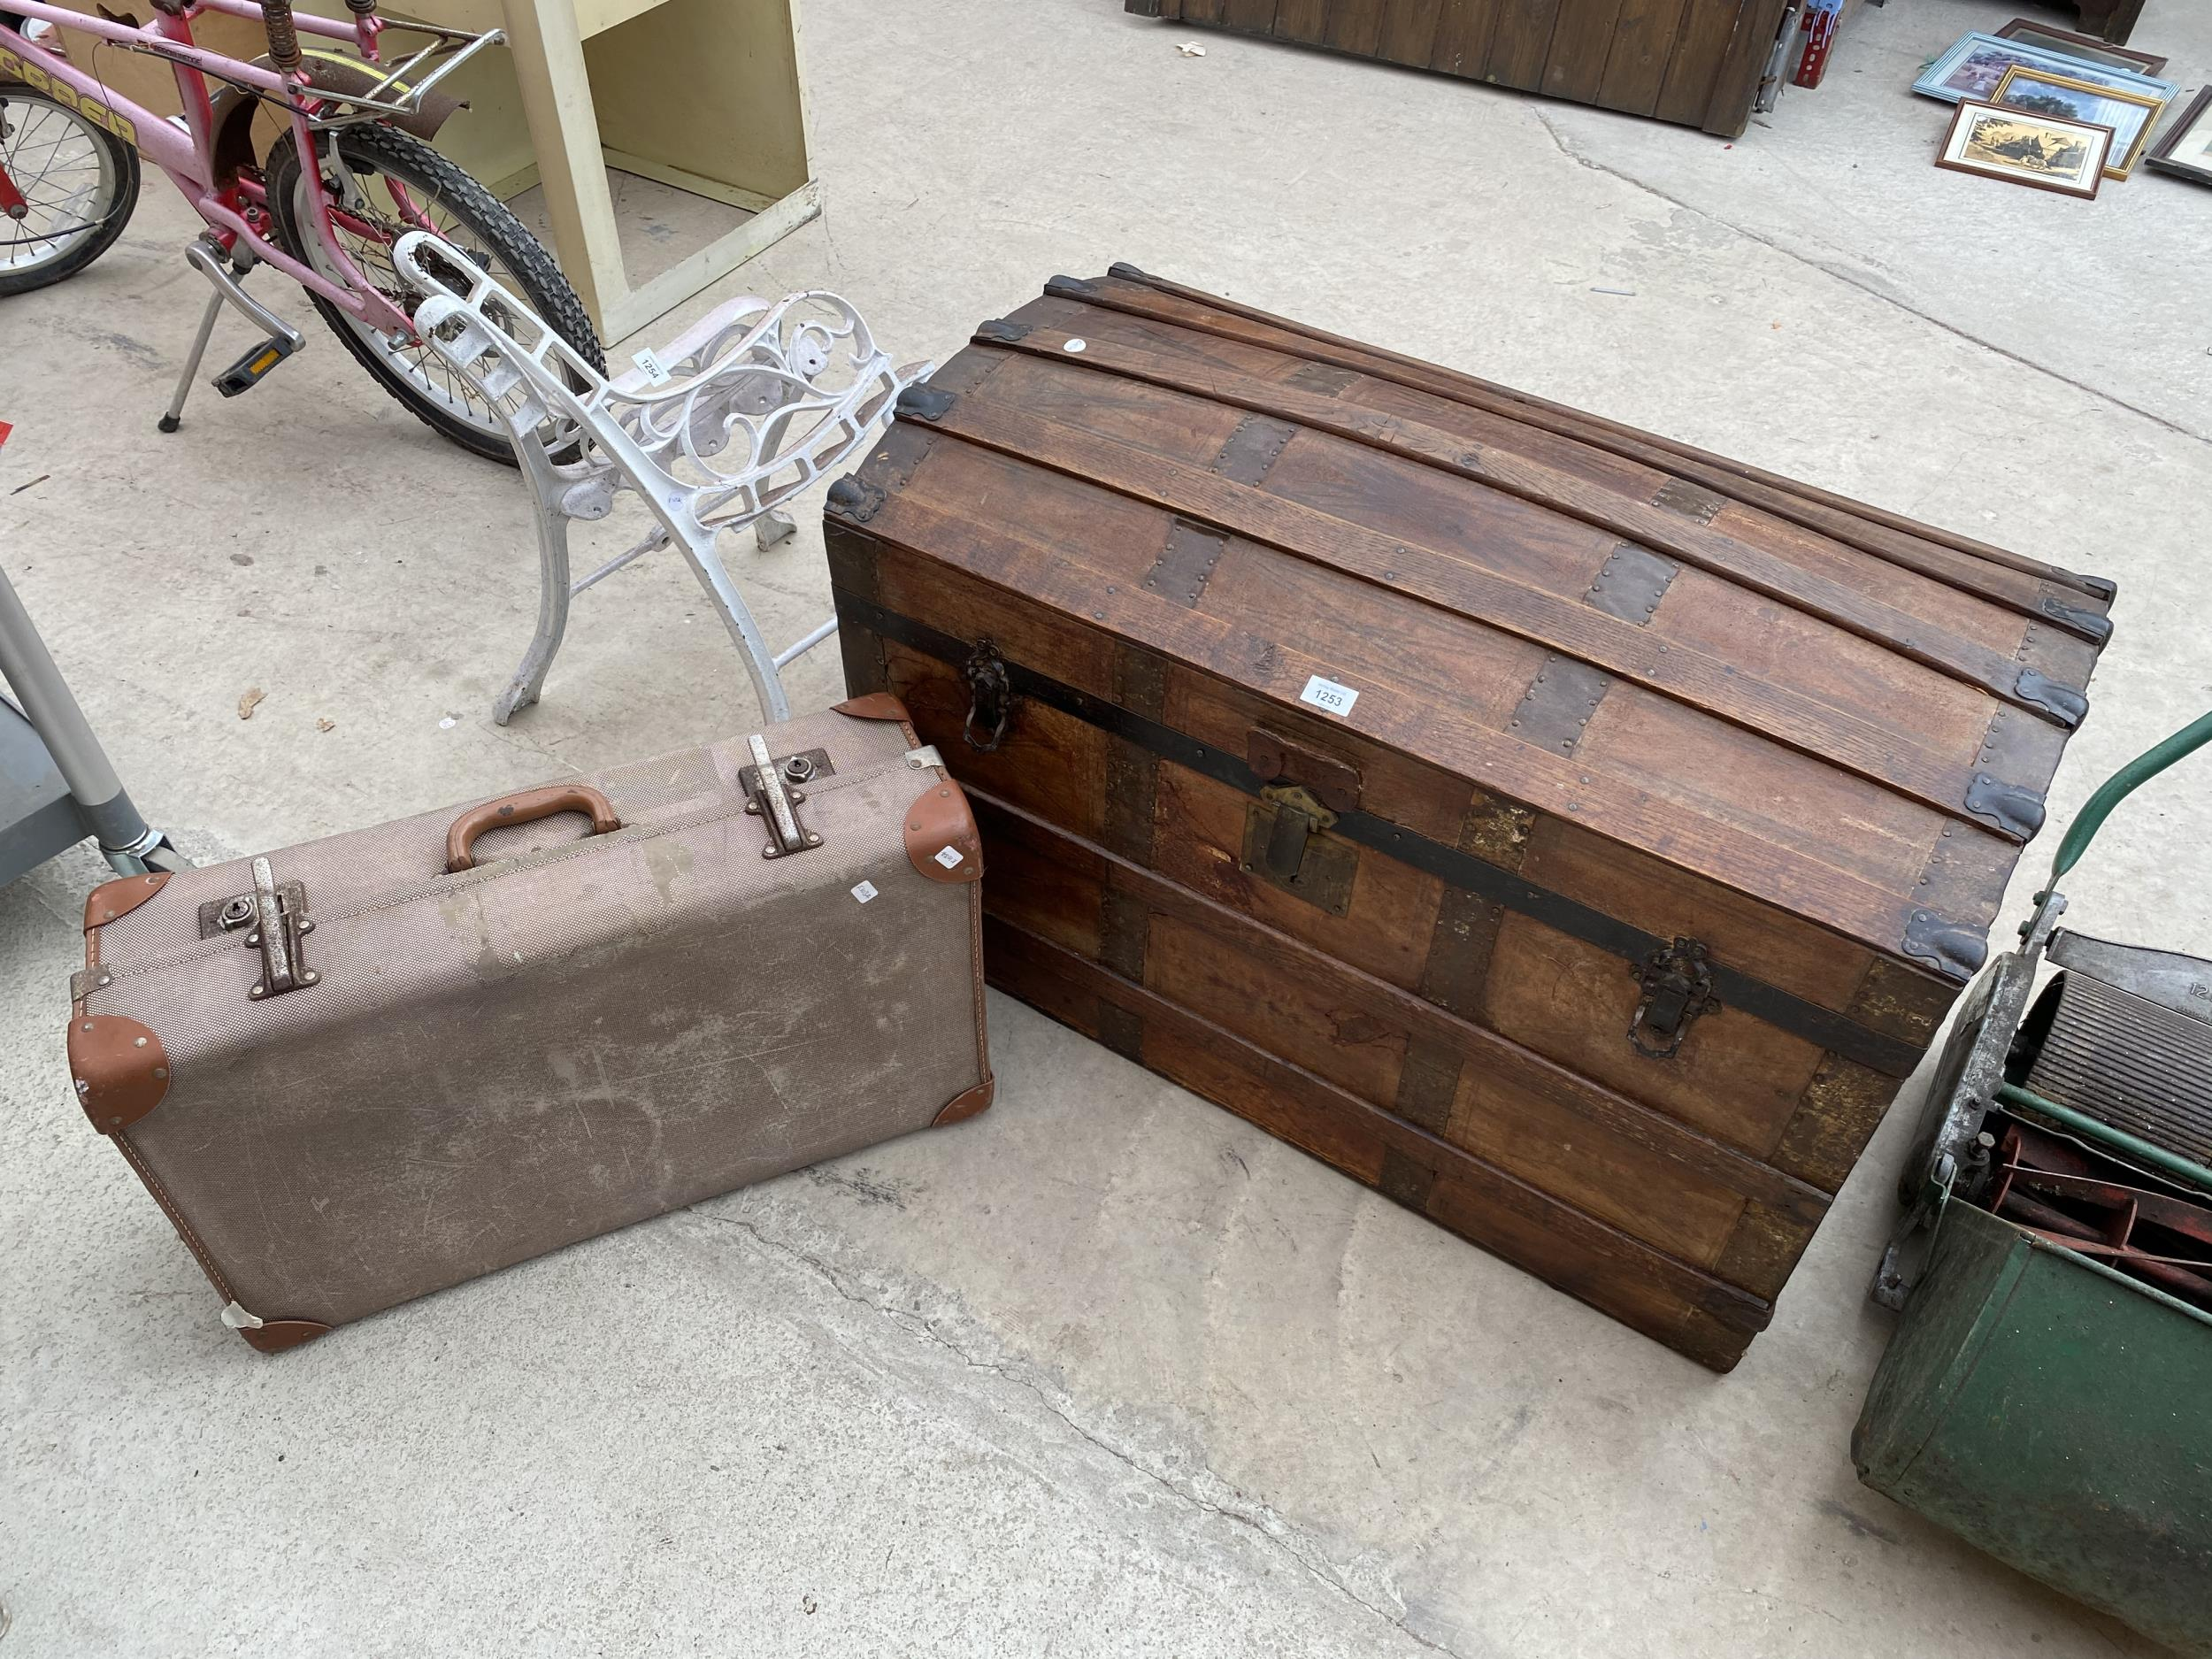 A VINTAGE WOODEN STORAGE CHEST WITH DECORATIVE WOODEN BANDING AND METAL STUD WORK AND A FURTHER